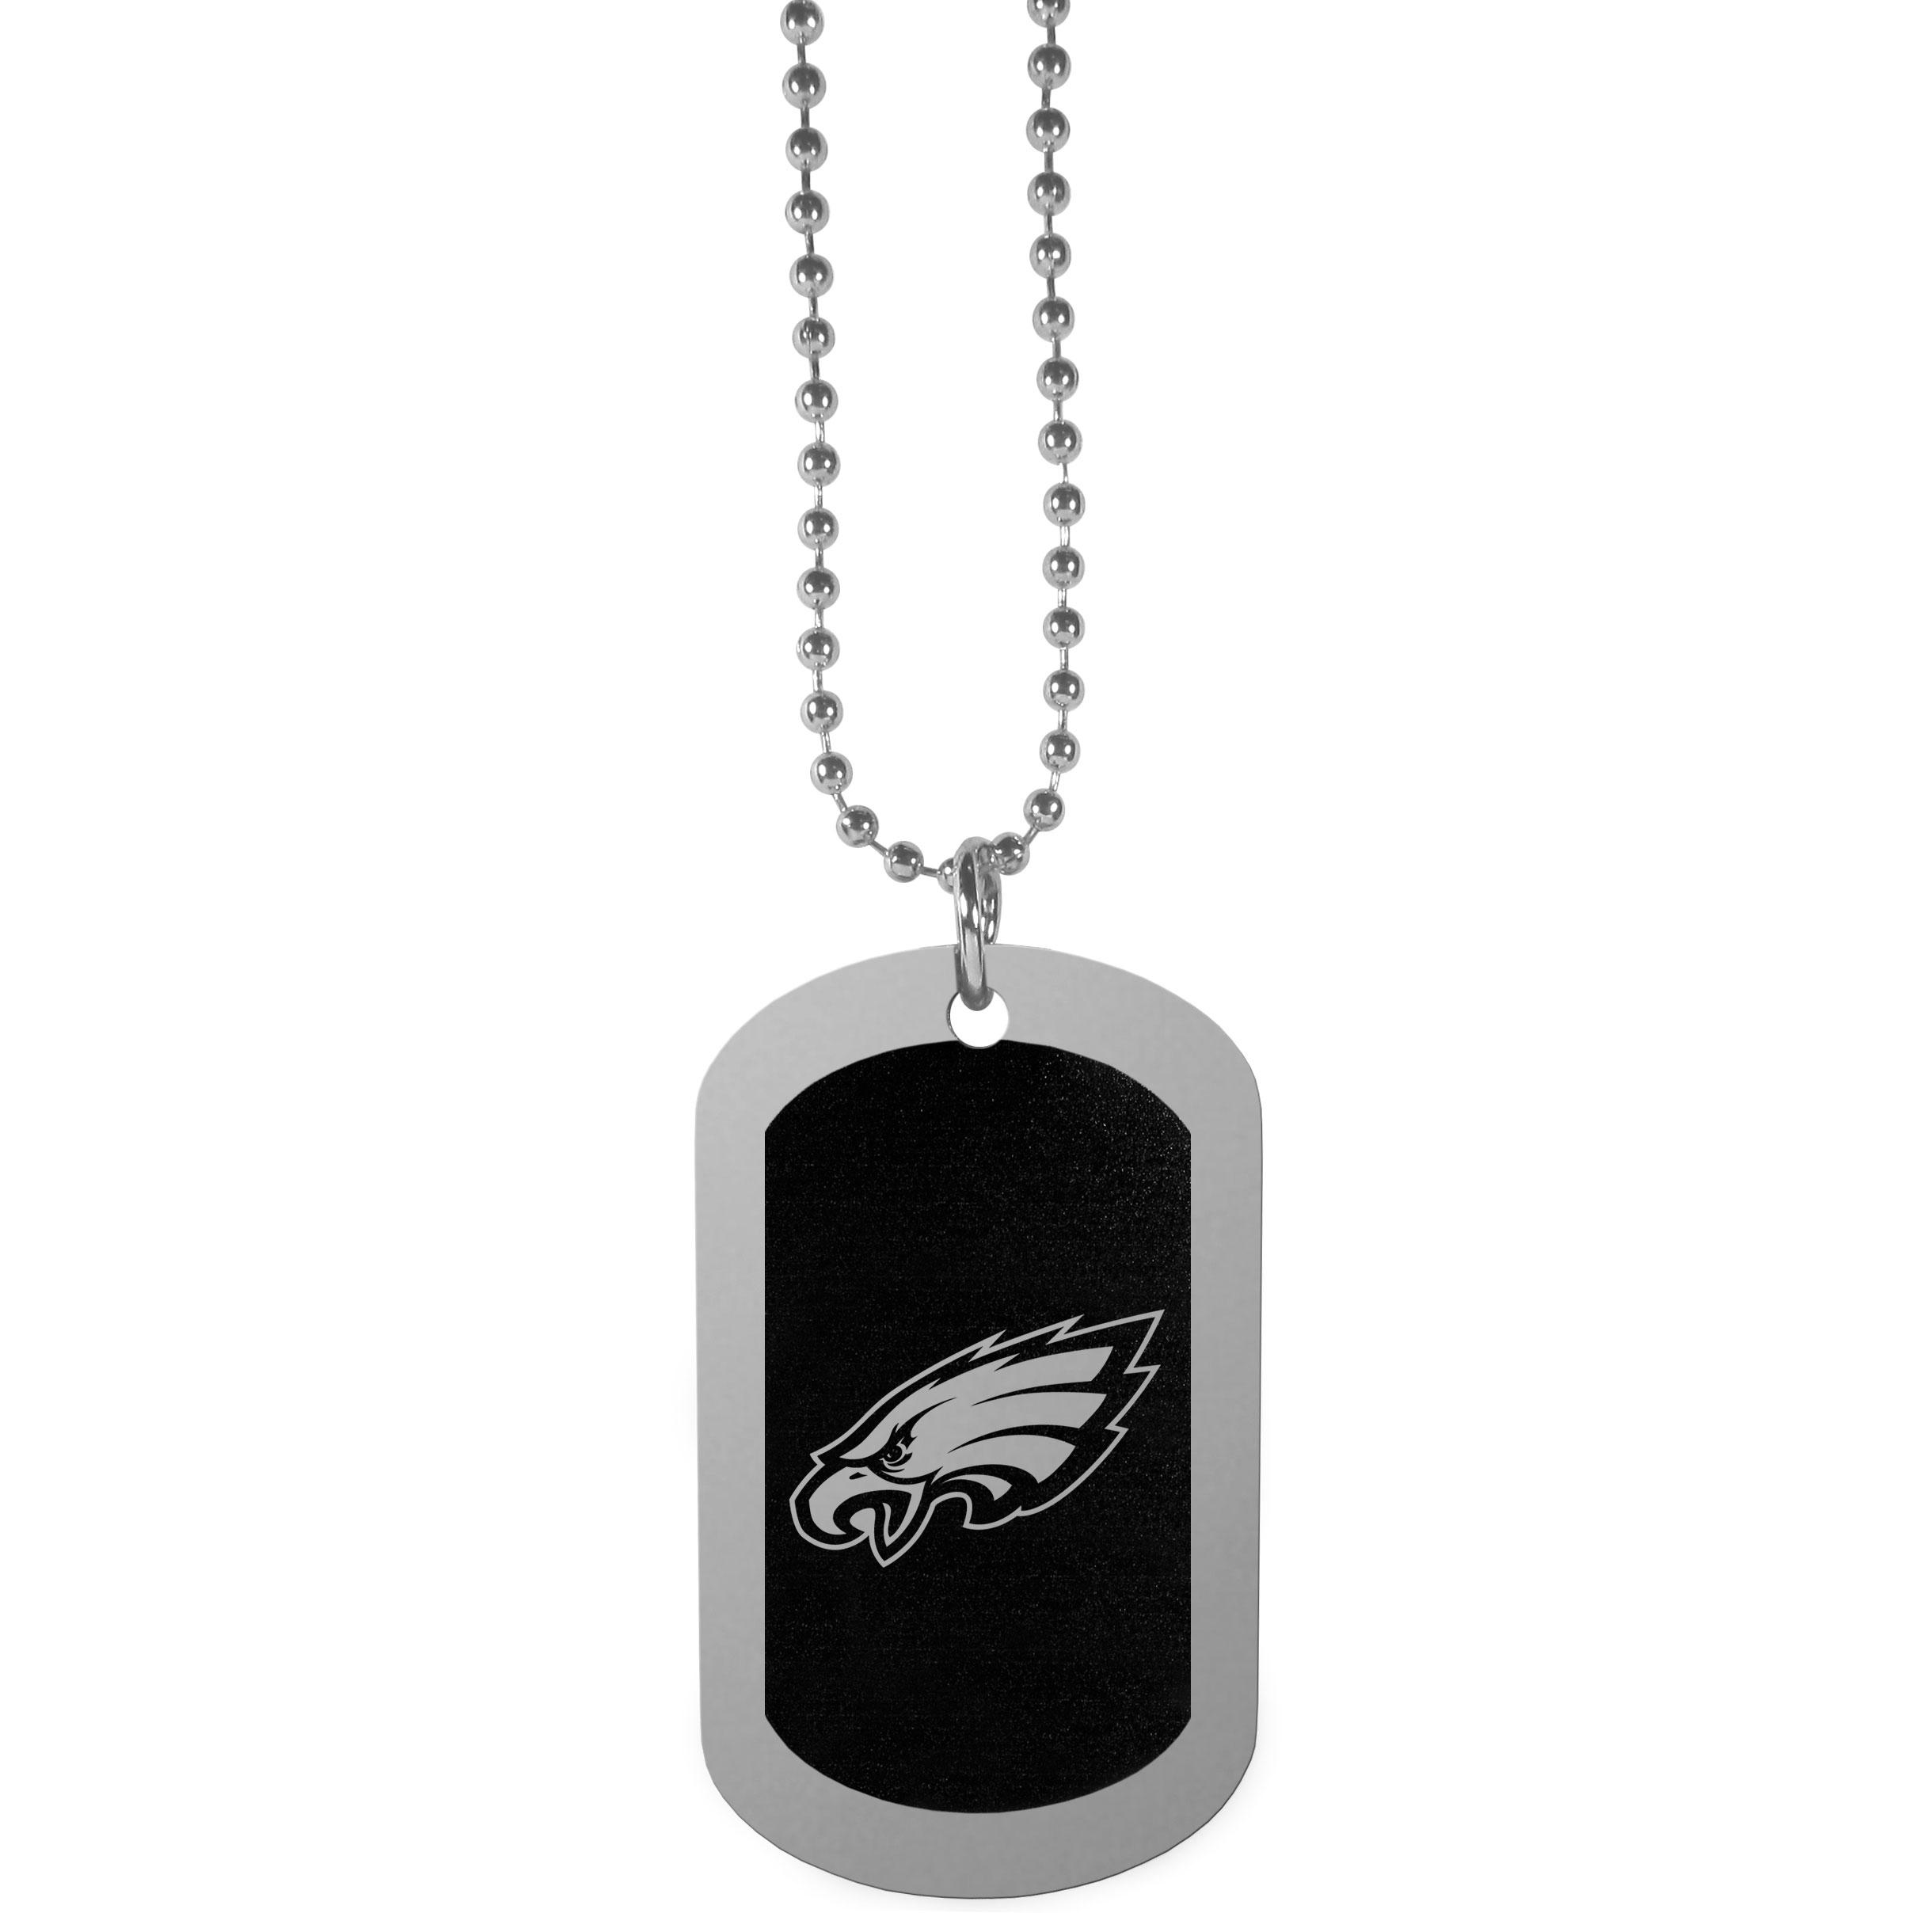 Philadelphia Eagles Chrome Tag Necklace - Dog tag necklaces are a fashion statement that is here to stay. The sporty version of the classic tag features a black printed over a high polish tag to create a bold and sporty look. The tag comes on a 26 inch ball chain with a ball and joint clasp. Any Philadelphia Eagles would be proud to wear this attractive fashion accessory.